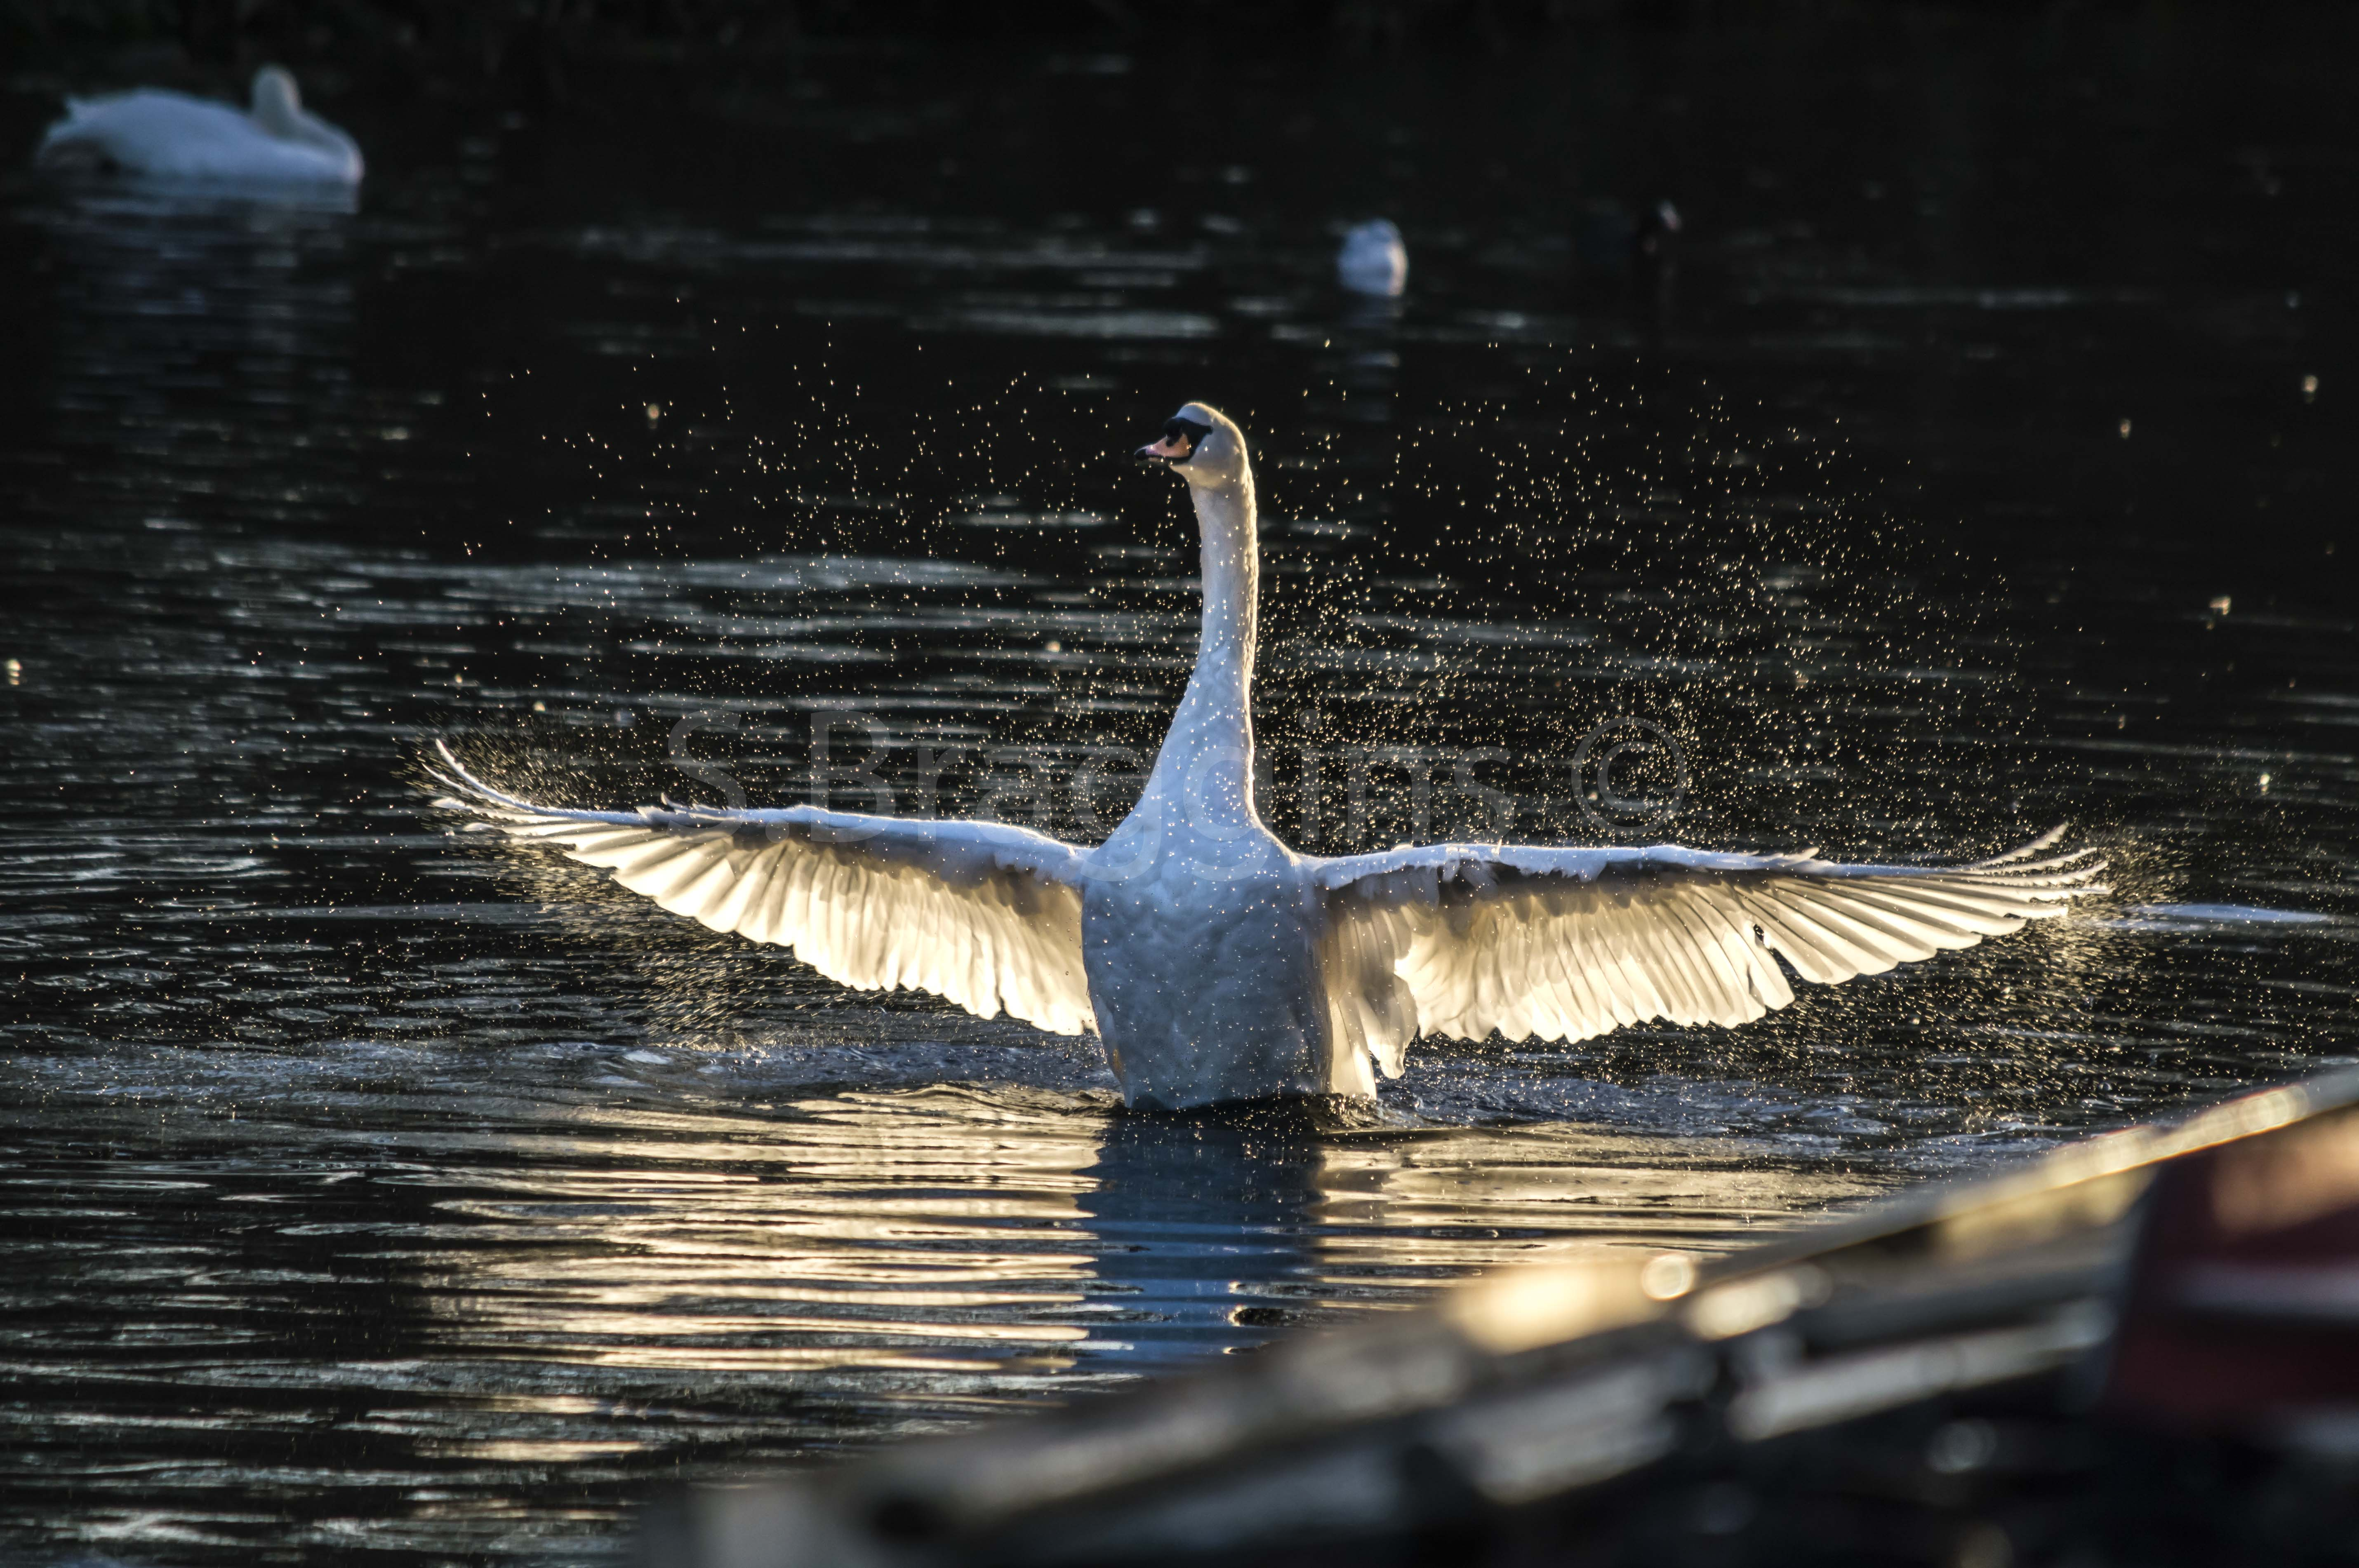 River Lea Phoenix (Markfield Park) : A swan finishes washing itself in the late afternoon sun - December 2016 (Flickr hall of fame winner)